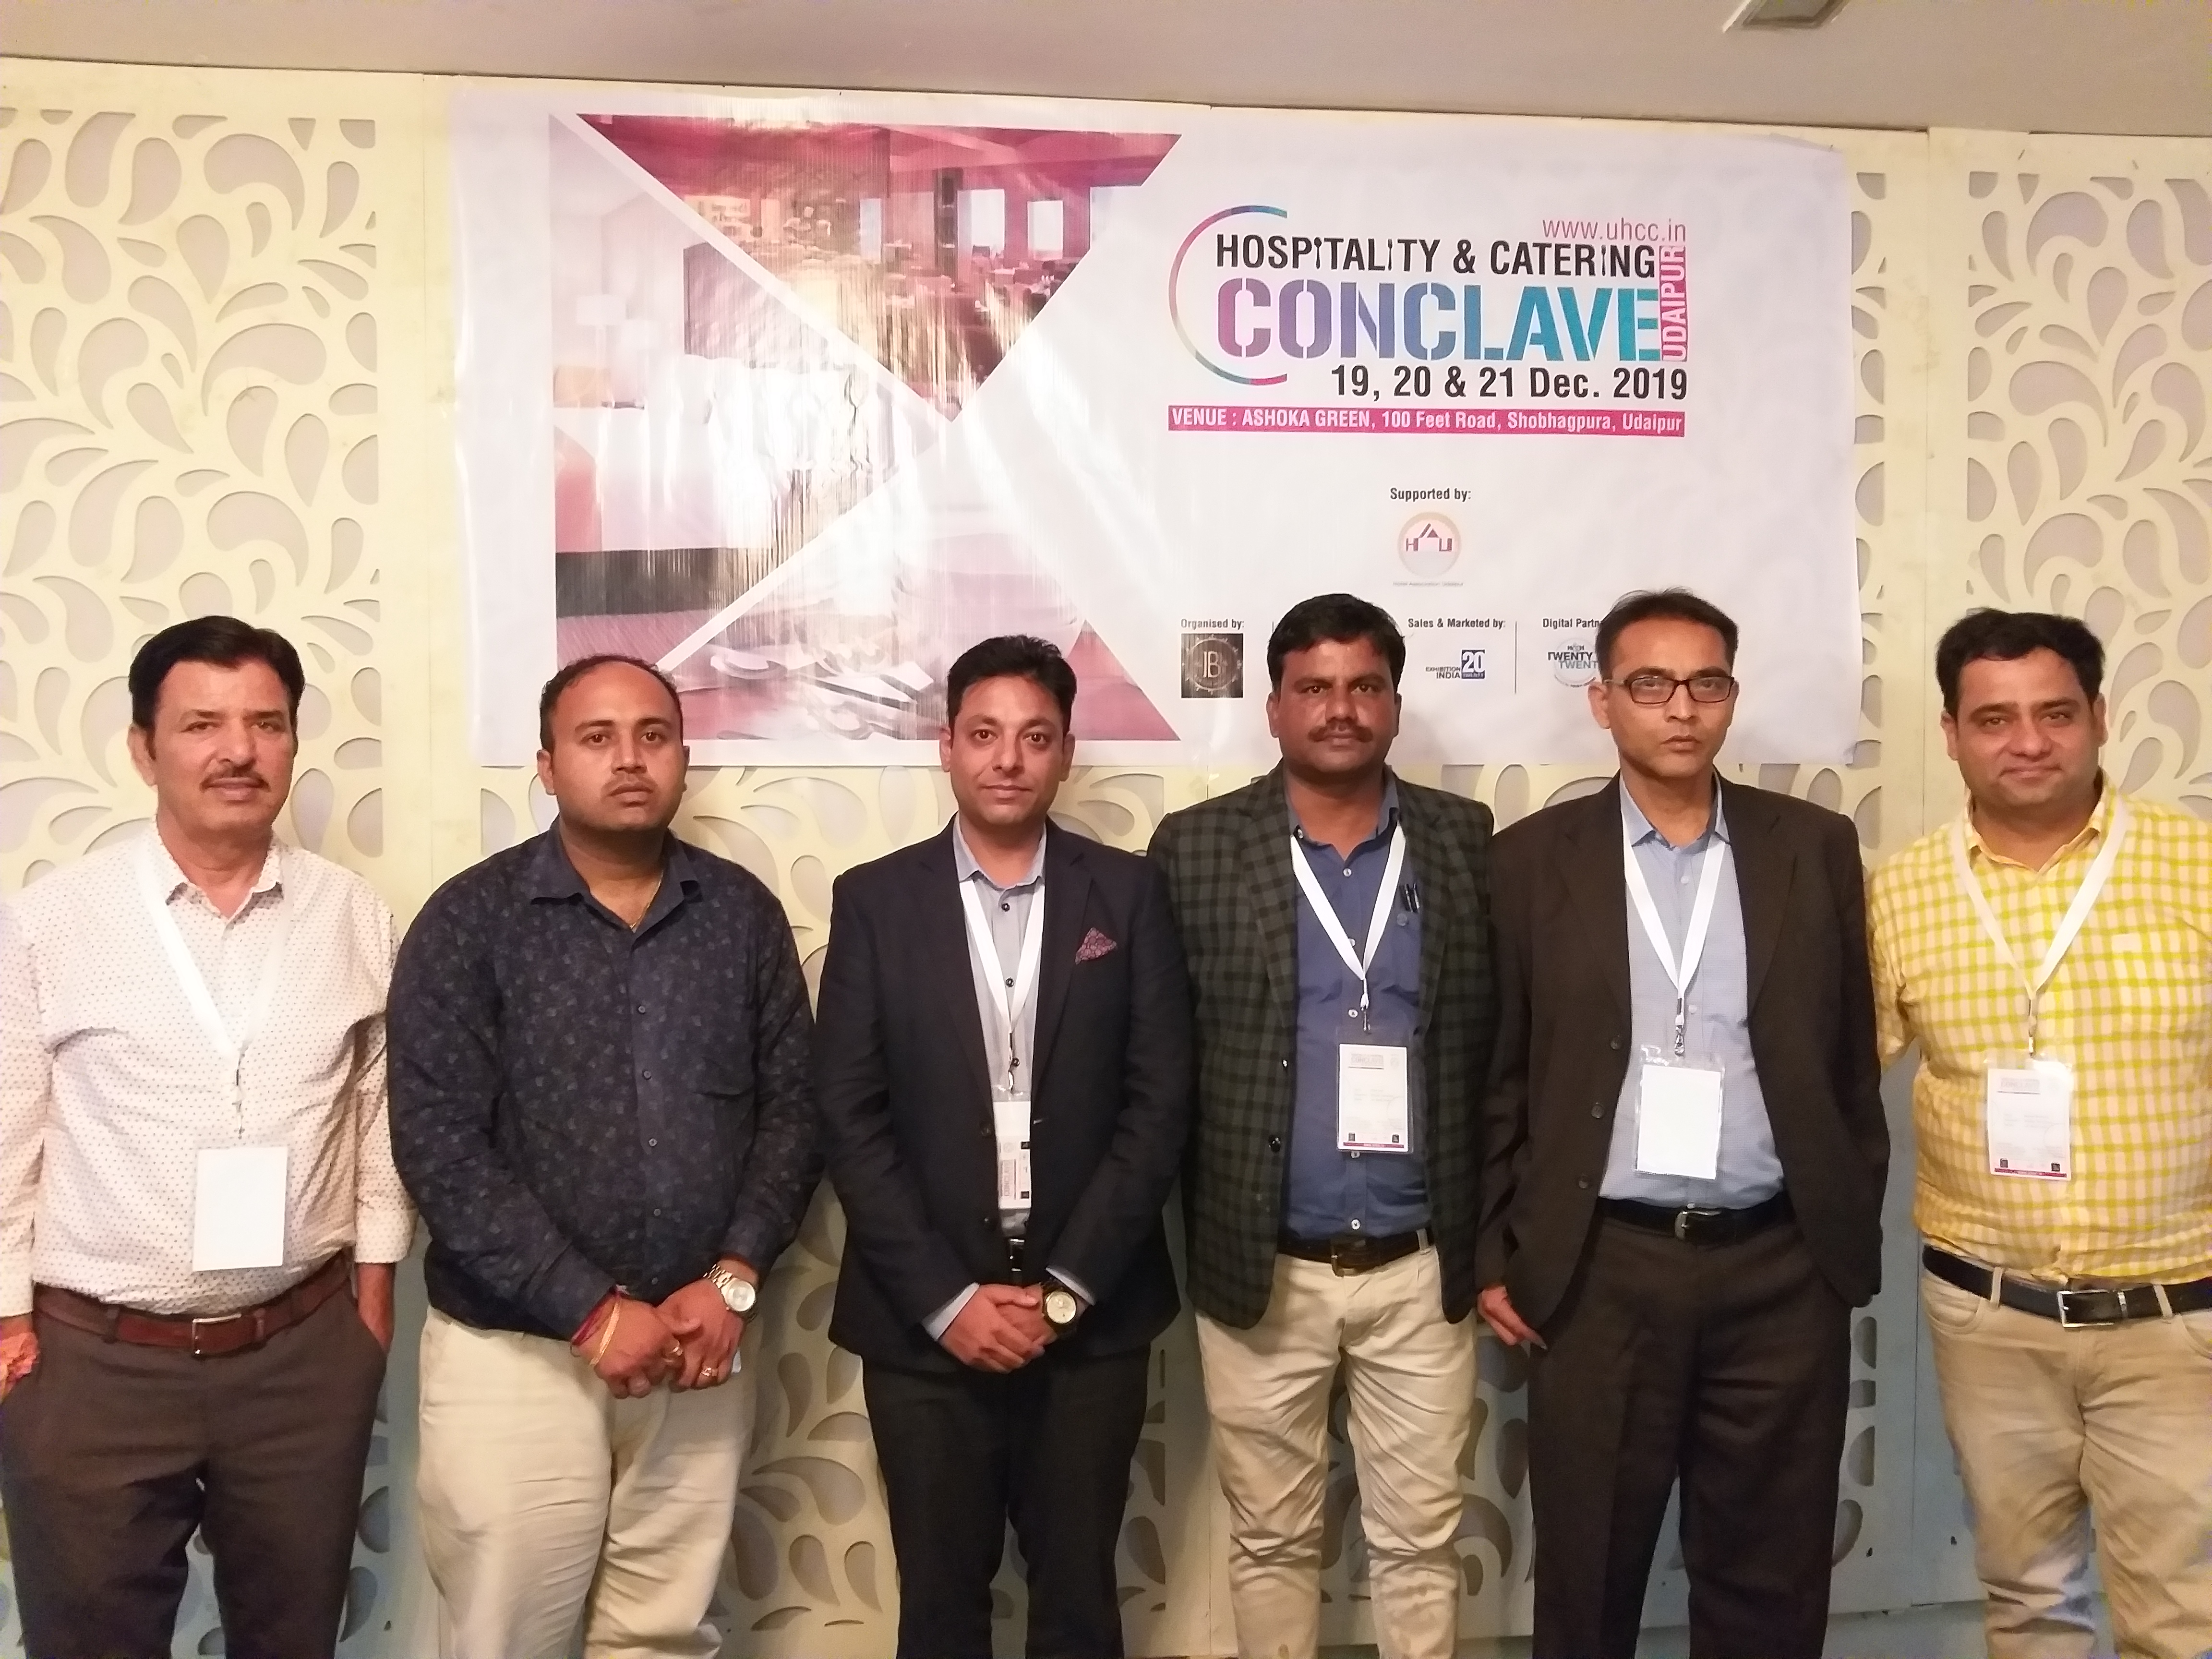 Udaipur Hospitality & Catering Conclave from 19